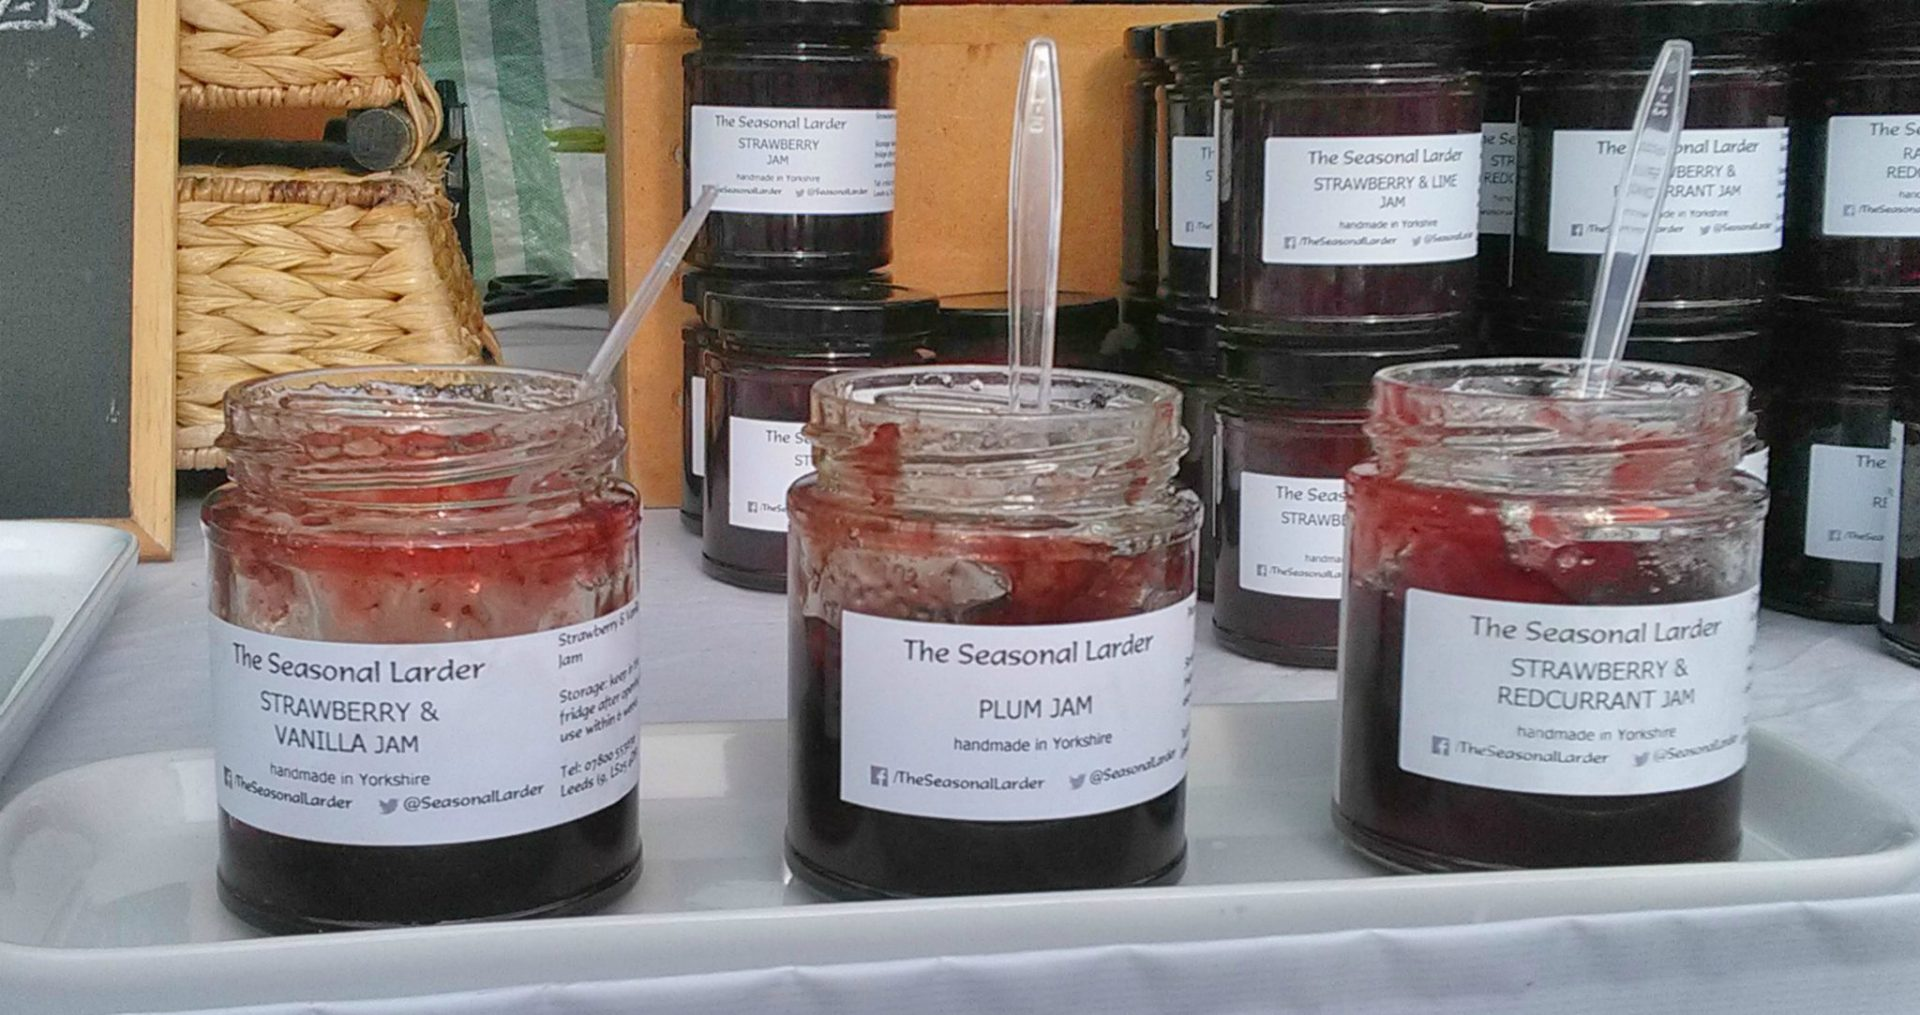 Locally made Handmade preserves, jams & cordials made in Yorkshire, from locally grown seasonal fruits. Leeds Indie food at it's best from Fabrication